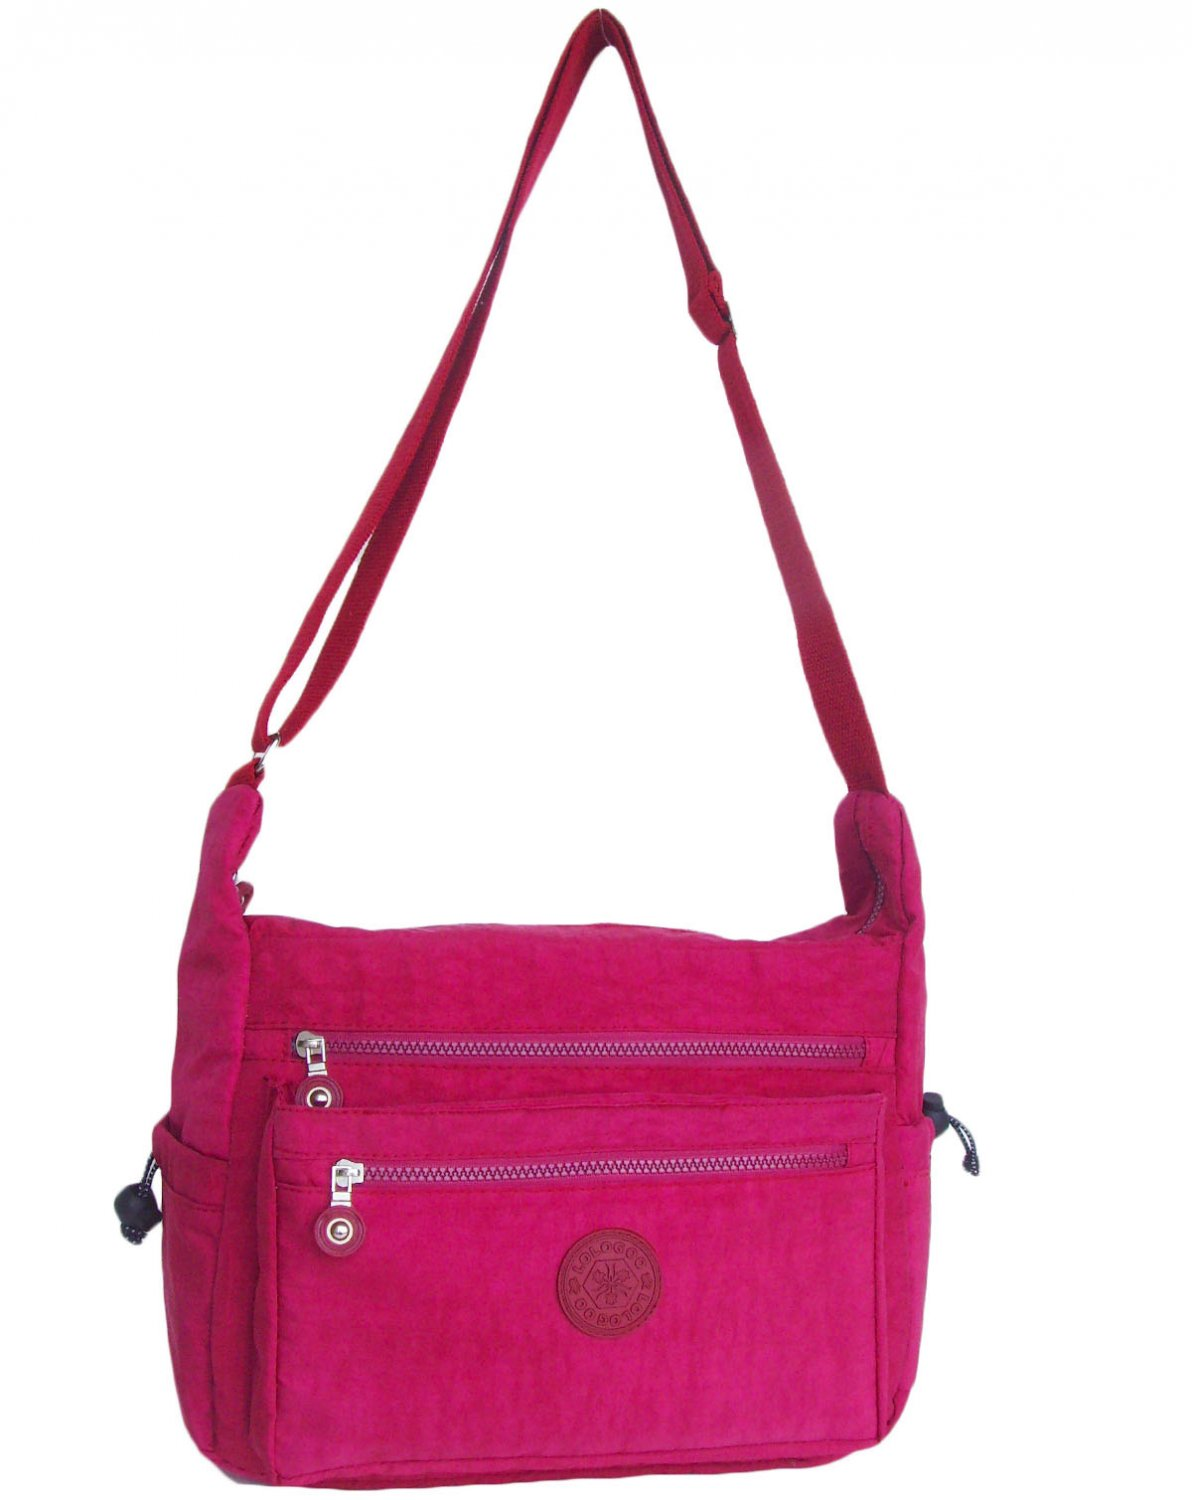 HONG YE Pure Stripe Slouch Bag,sku:hb80red2